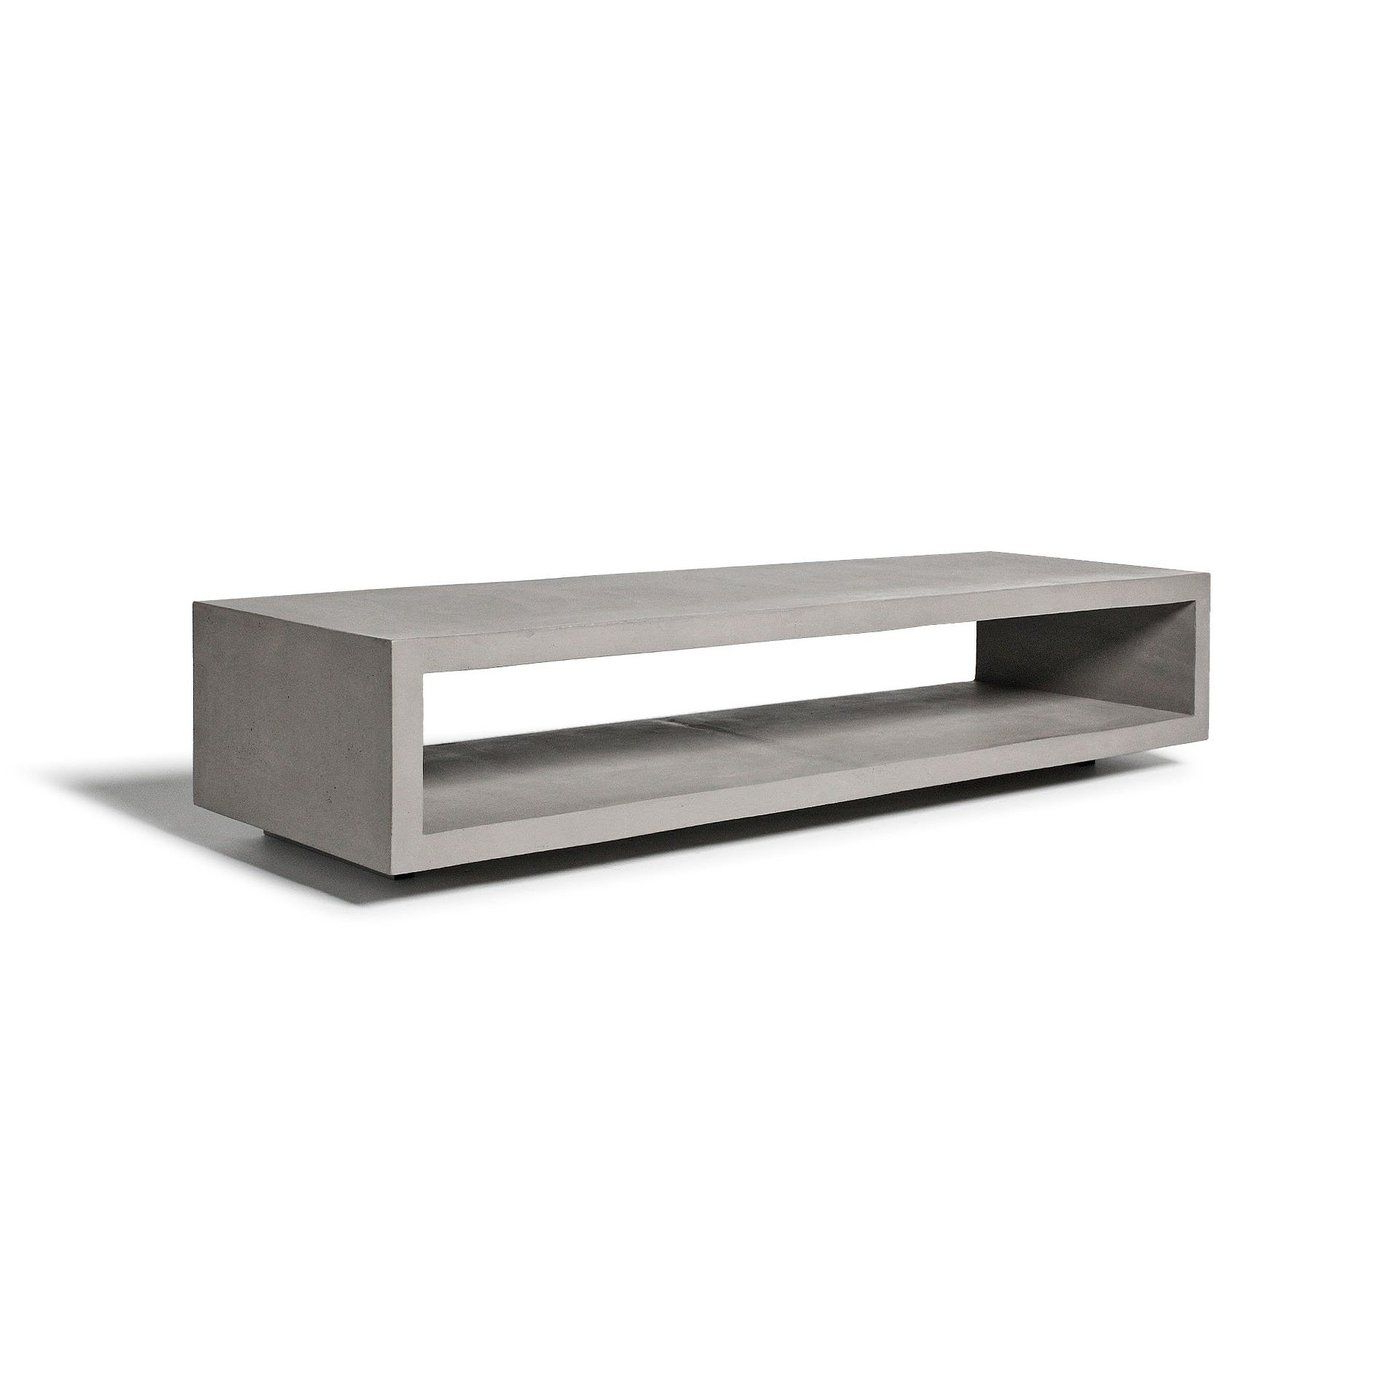 Newest Bench Tv Stands Intended For Monobloc Tv Benchlyon Beton In  (View 16 of 20)